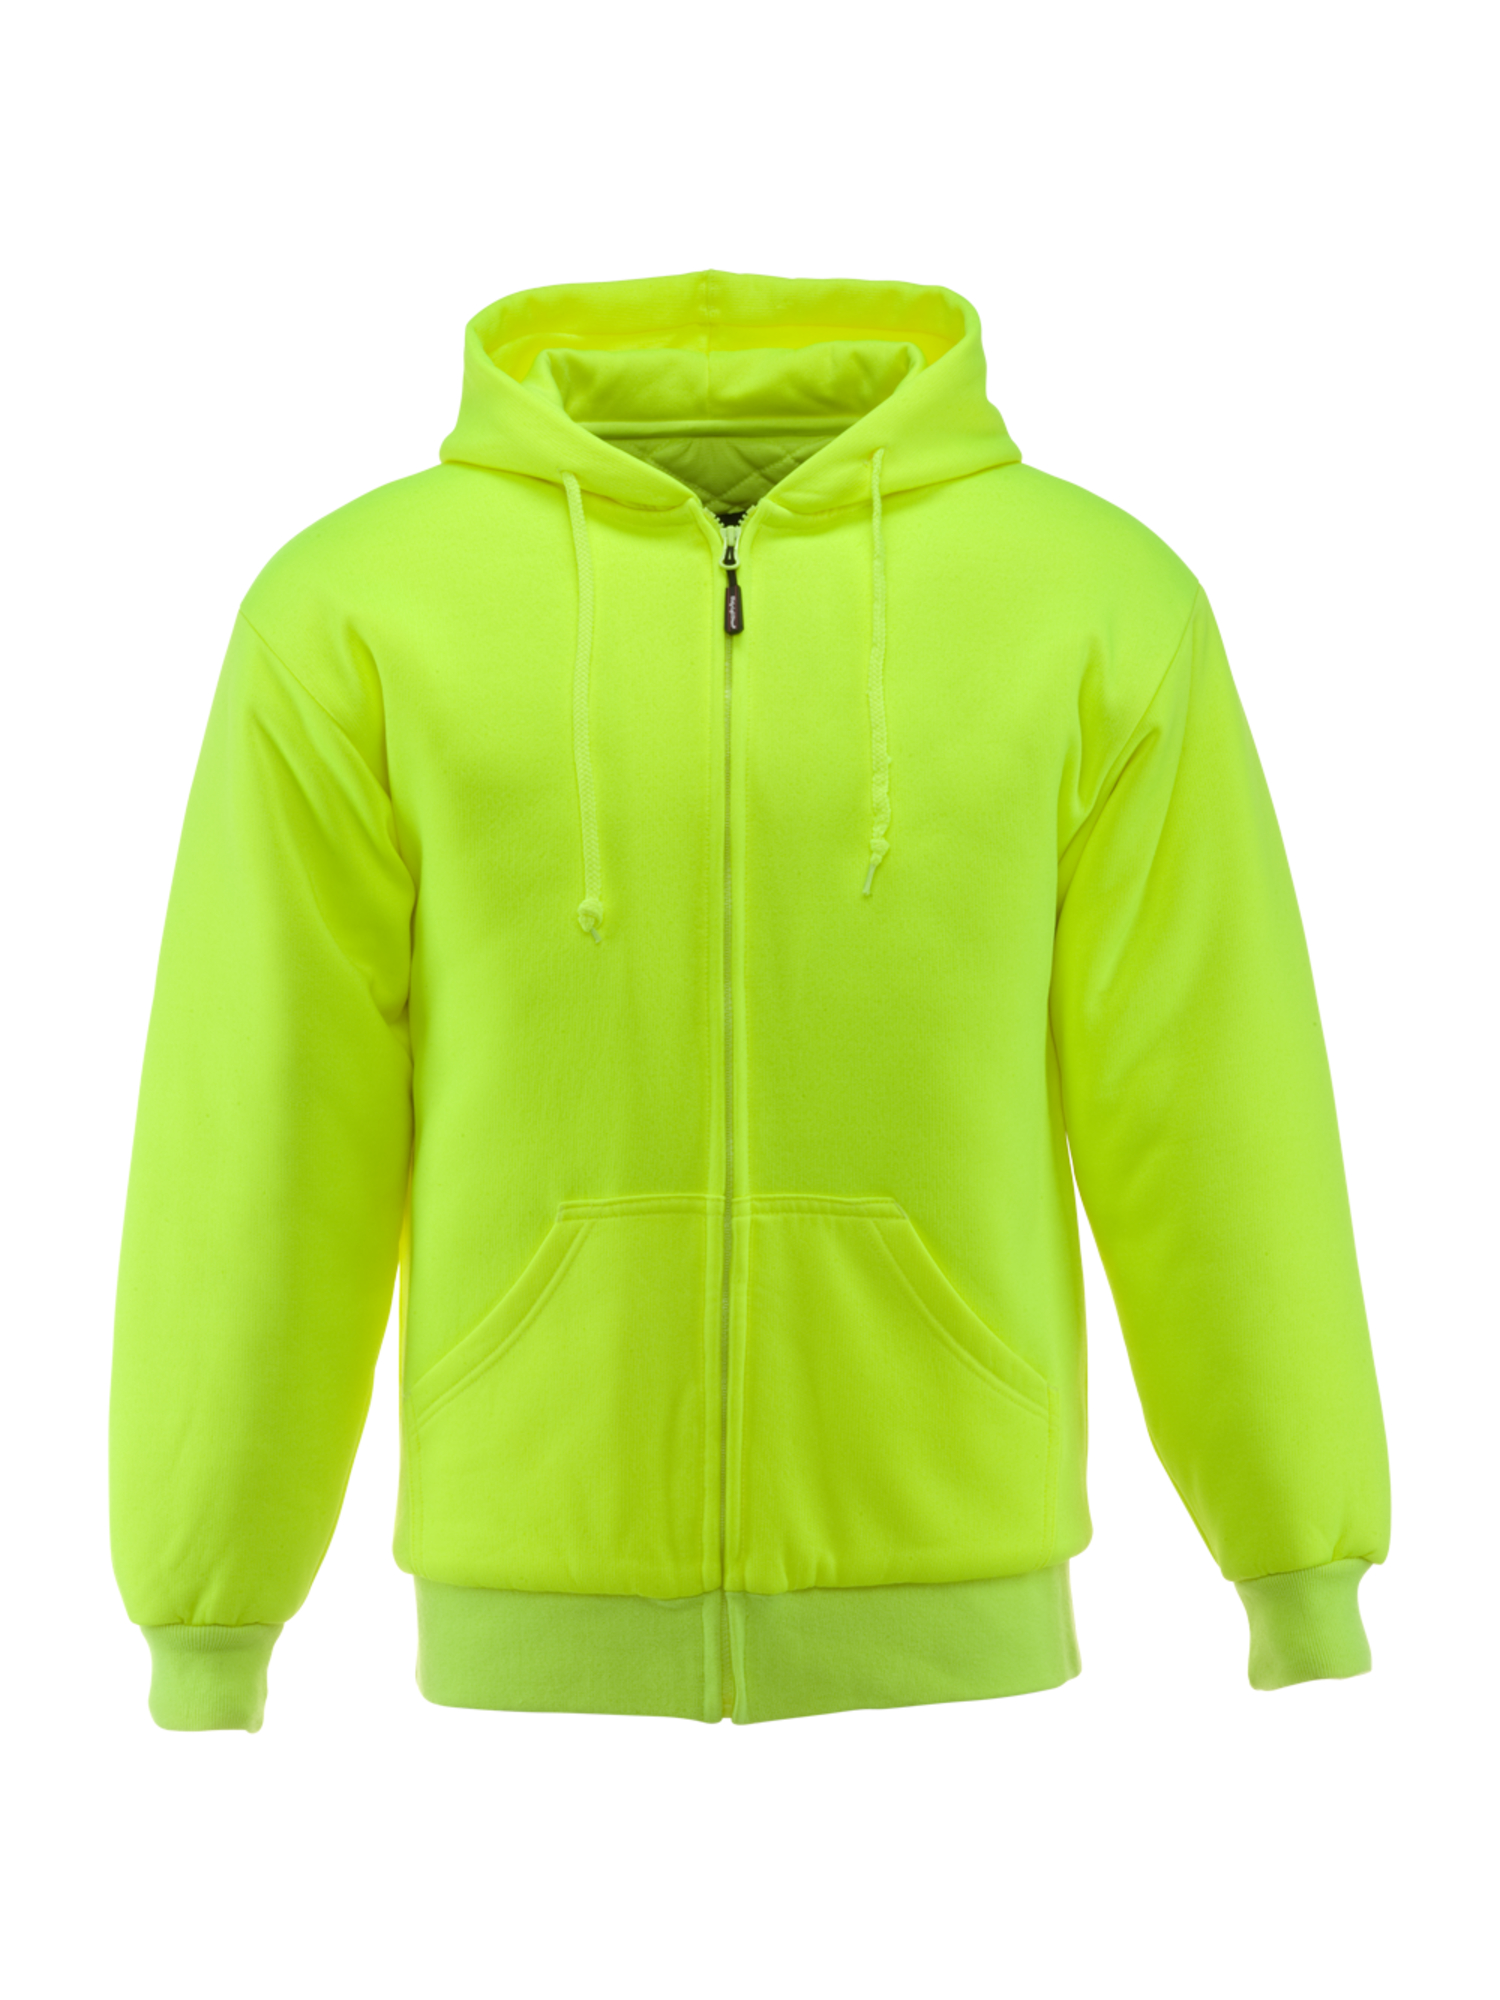 RefrigiWear™ Insulated Quilted Sweatshirt , Lime , 3XL , Regular , Polyester/Fabric/Cotton